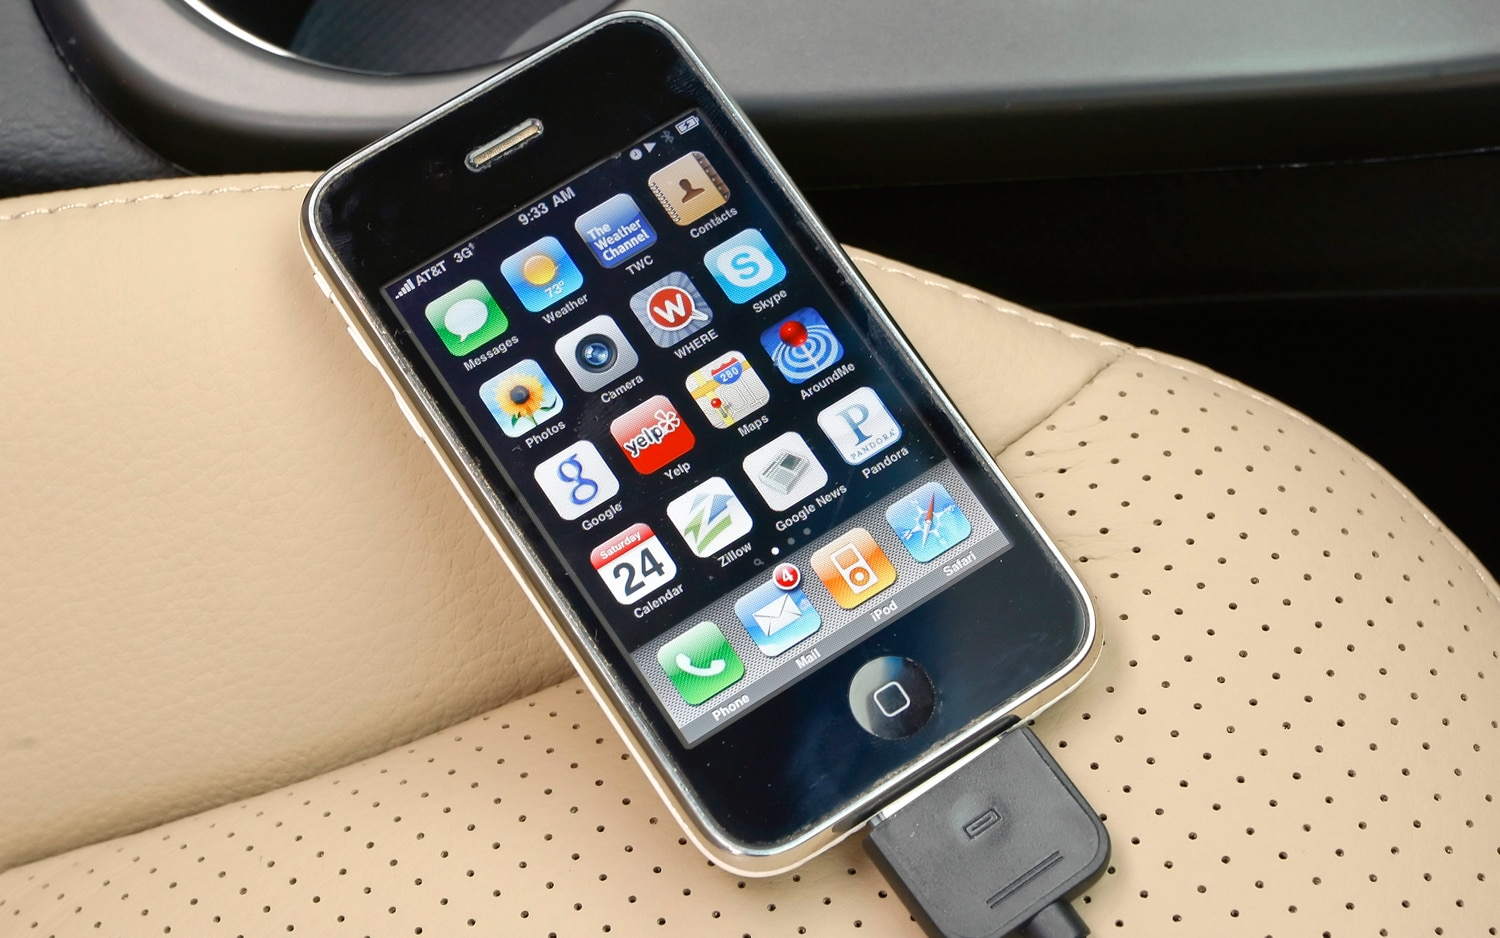 2012 Kia Sorento Iphone